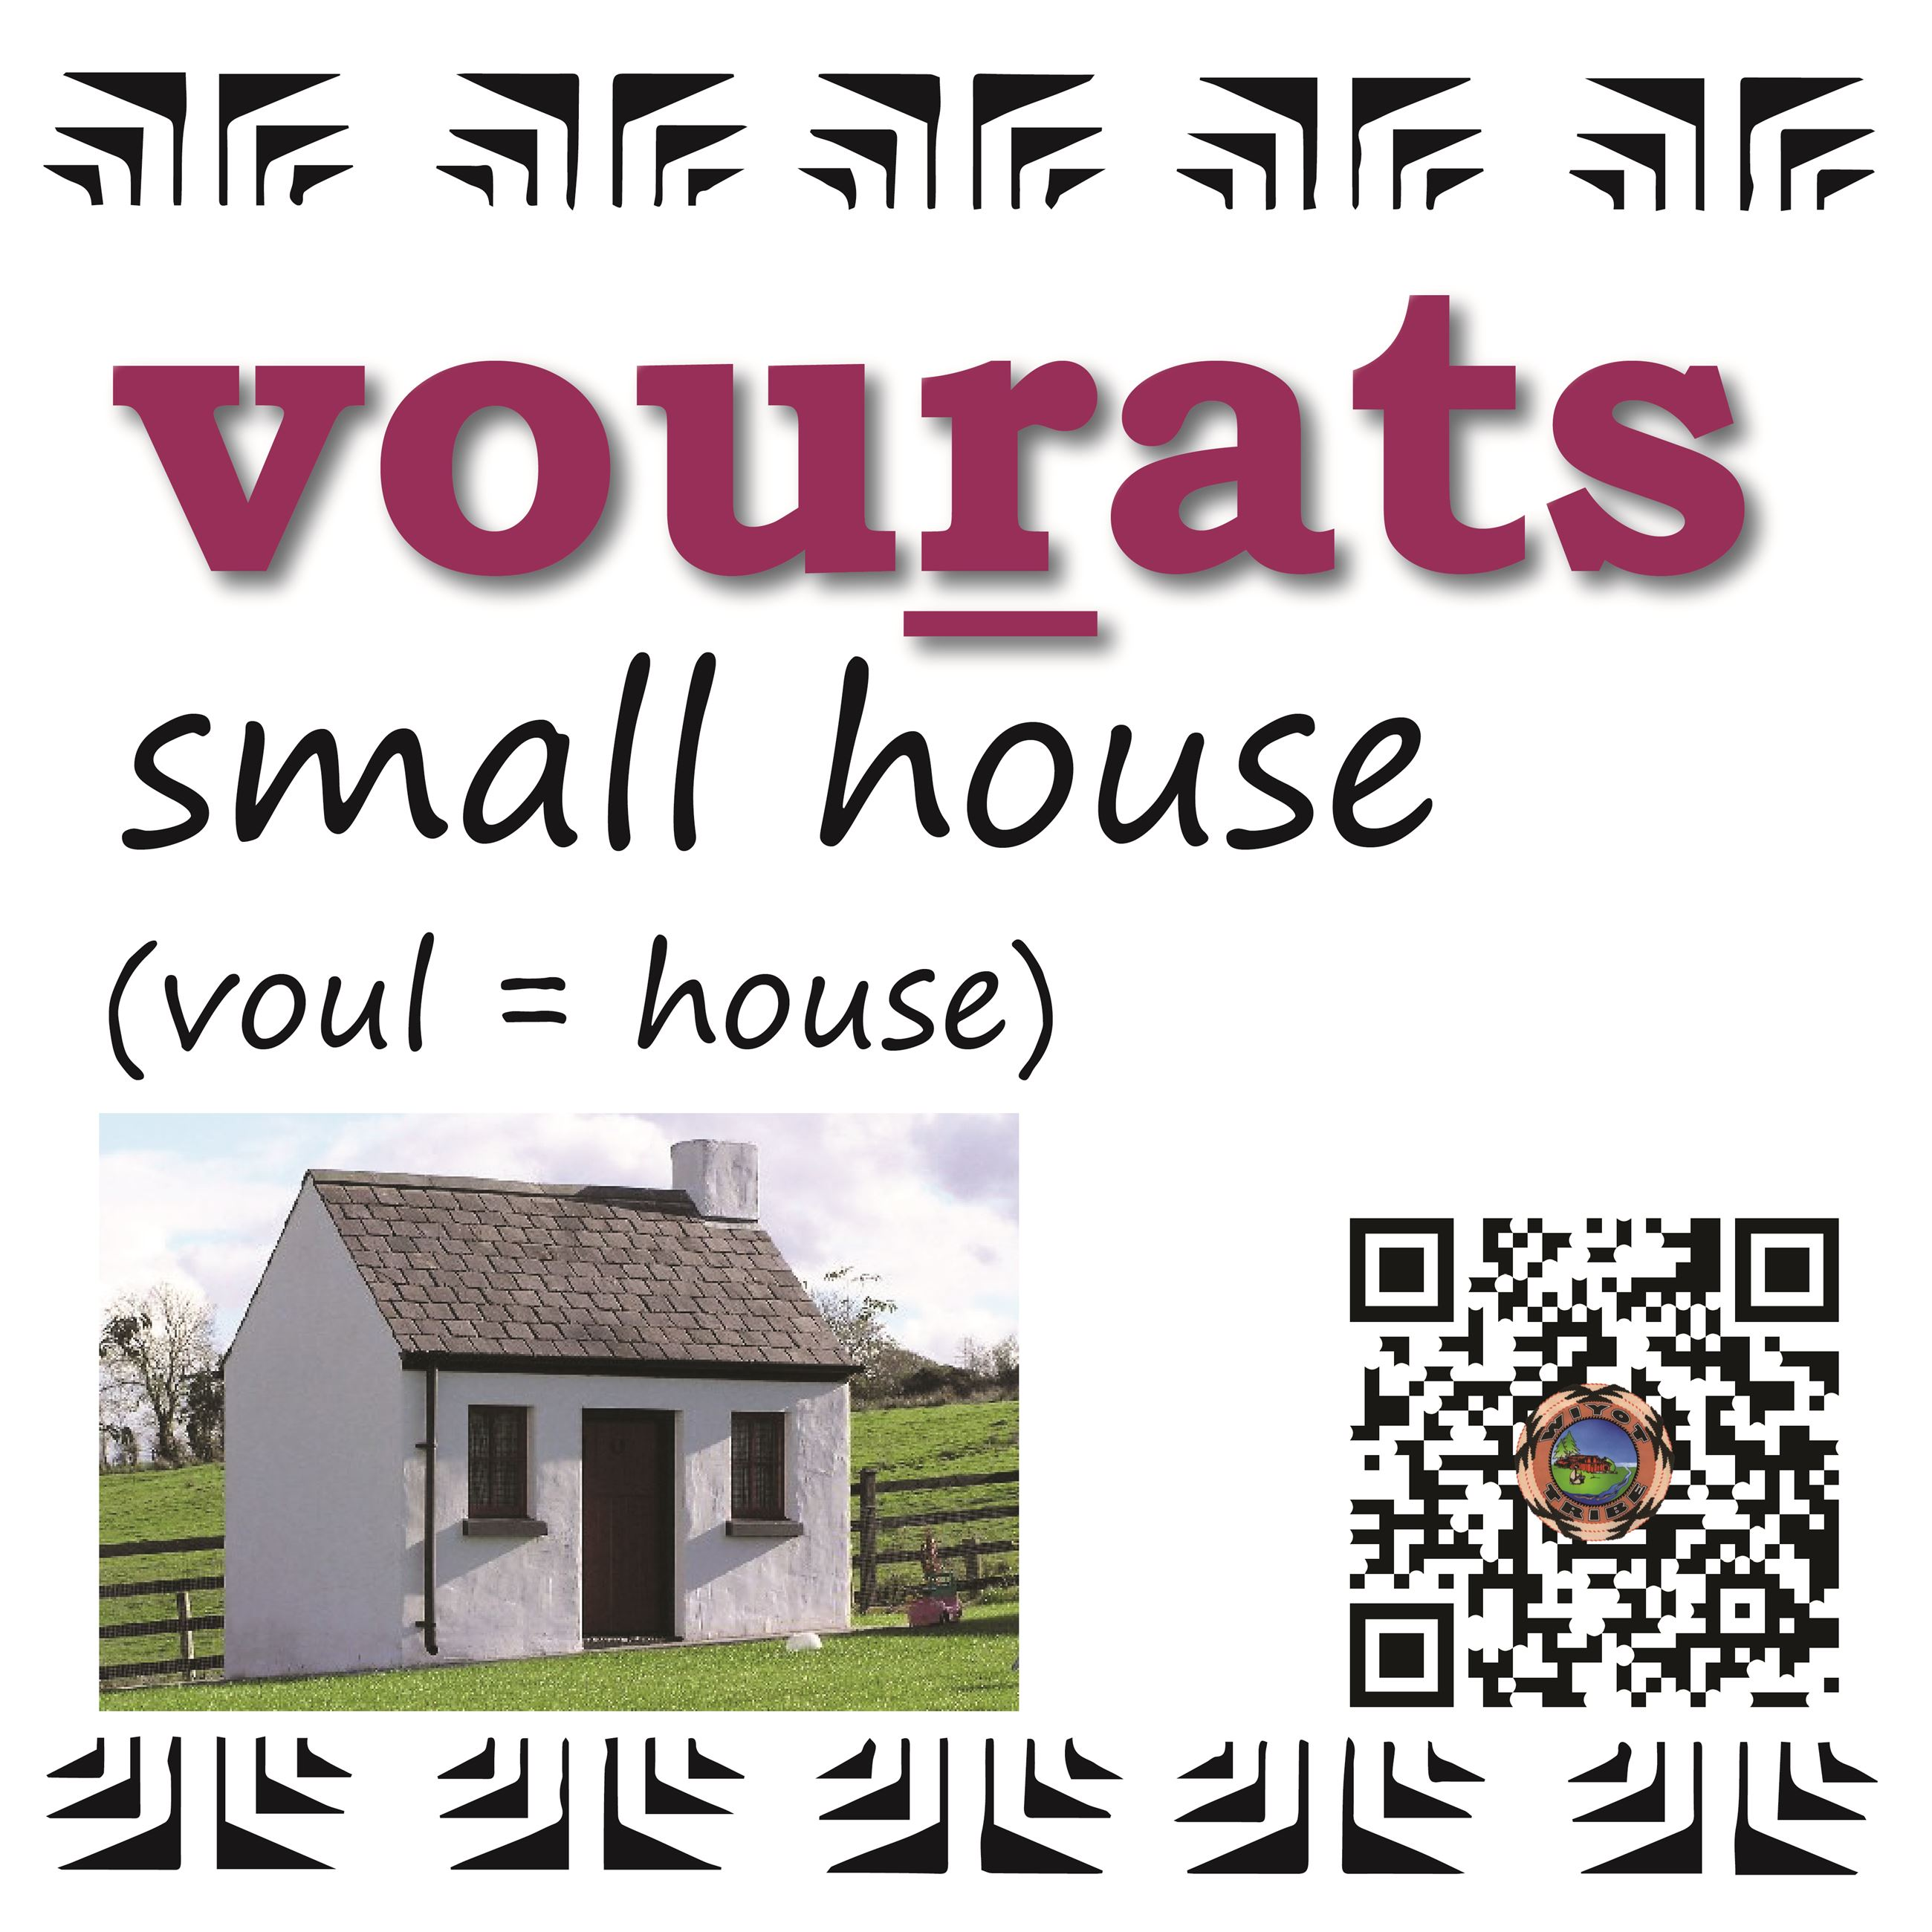 vourats